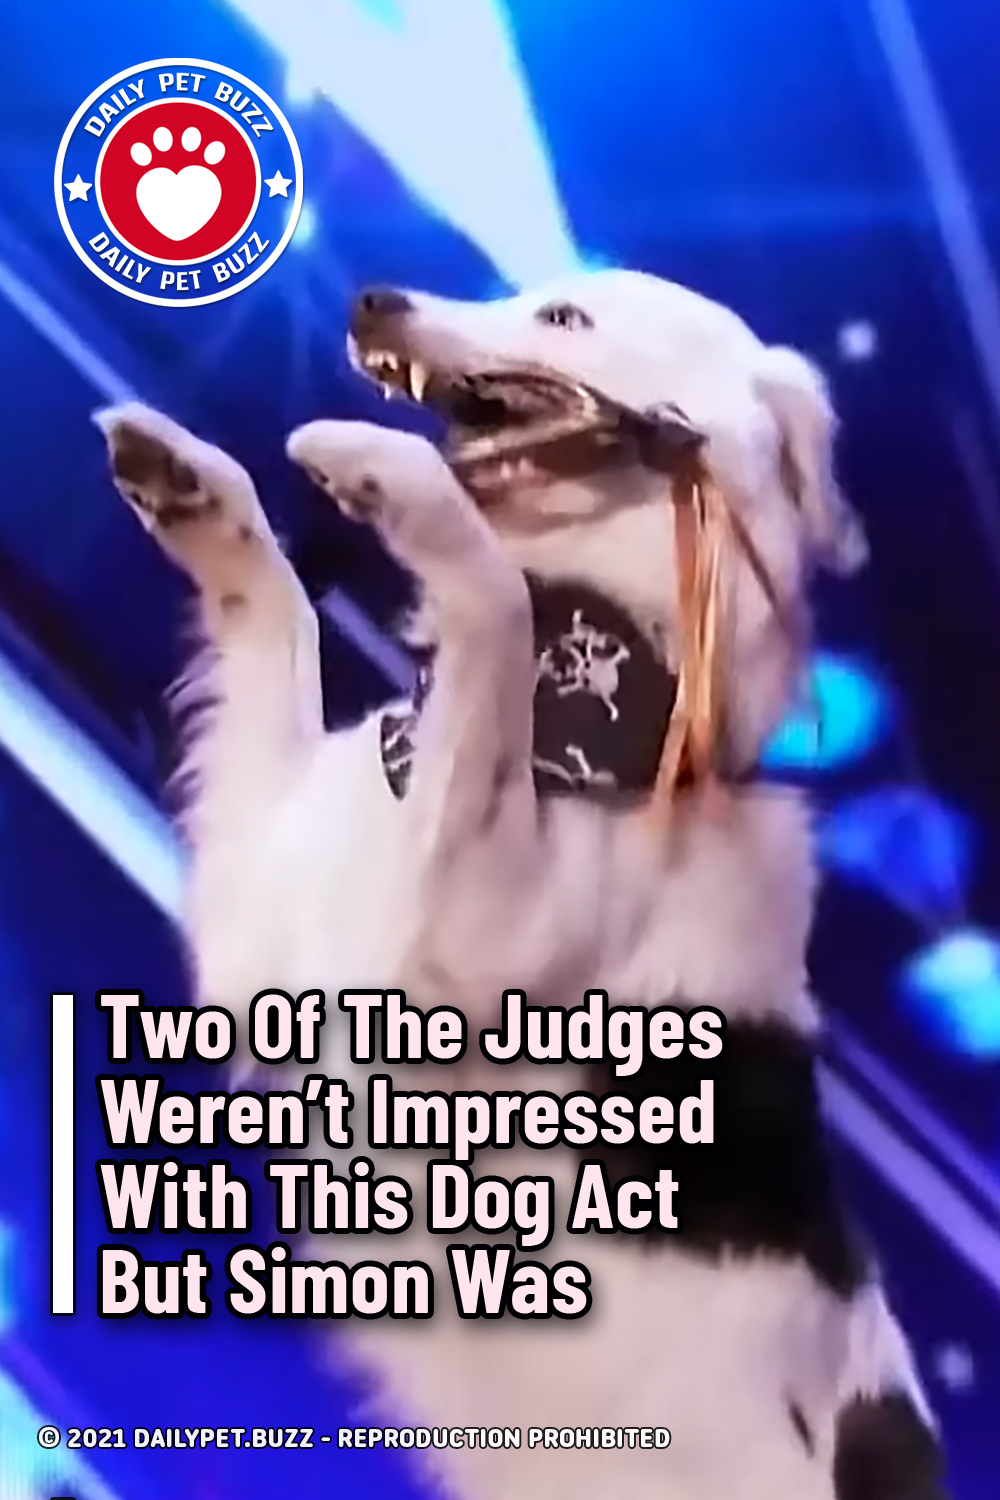 Two Of The Judges Weren\'t Impressed With This Dog Act But Simon Was